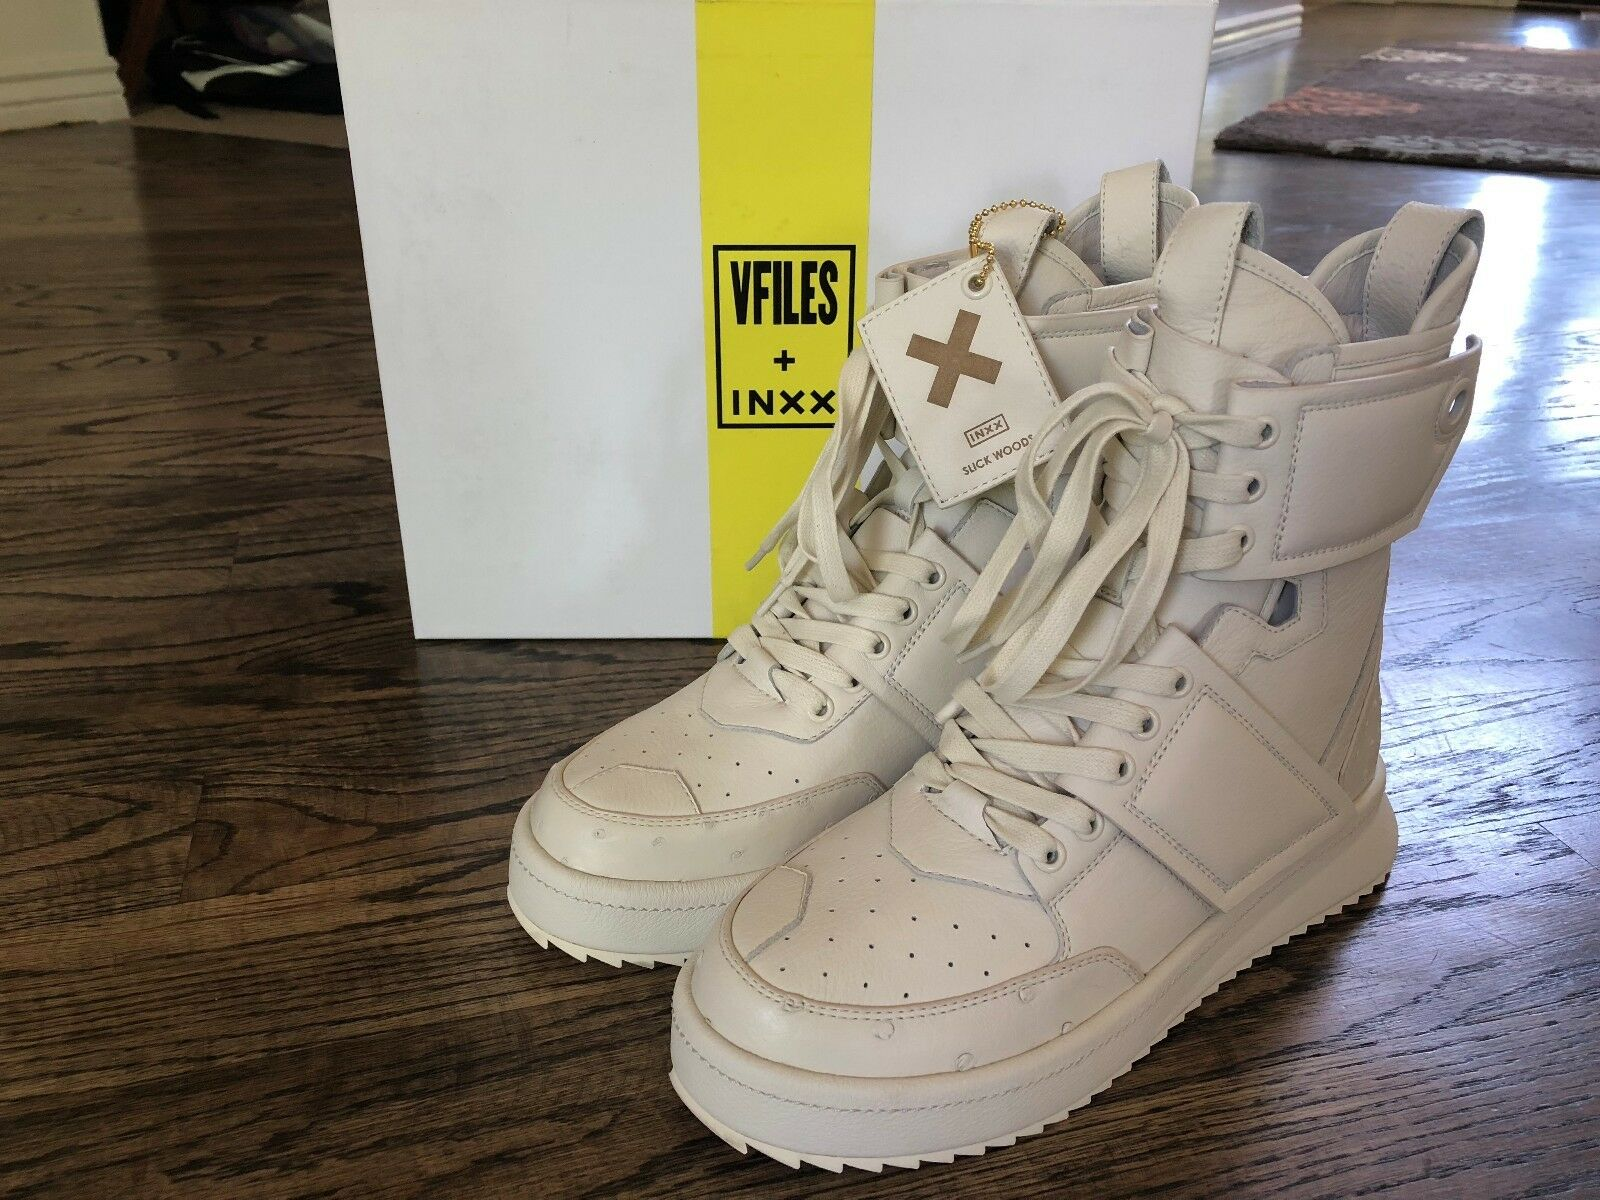 V-Files+ INXX street HYPERION 17 High Top scarpe scarpe scarpe Slick Woods Dimensione 9 NIB 33c5a4